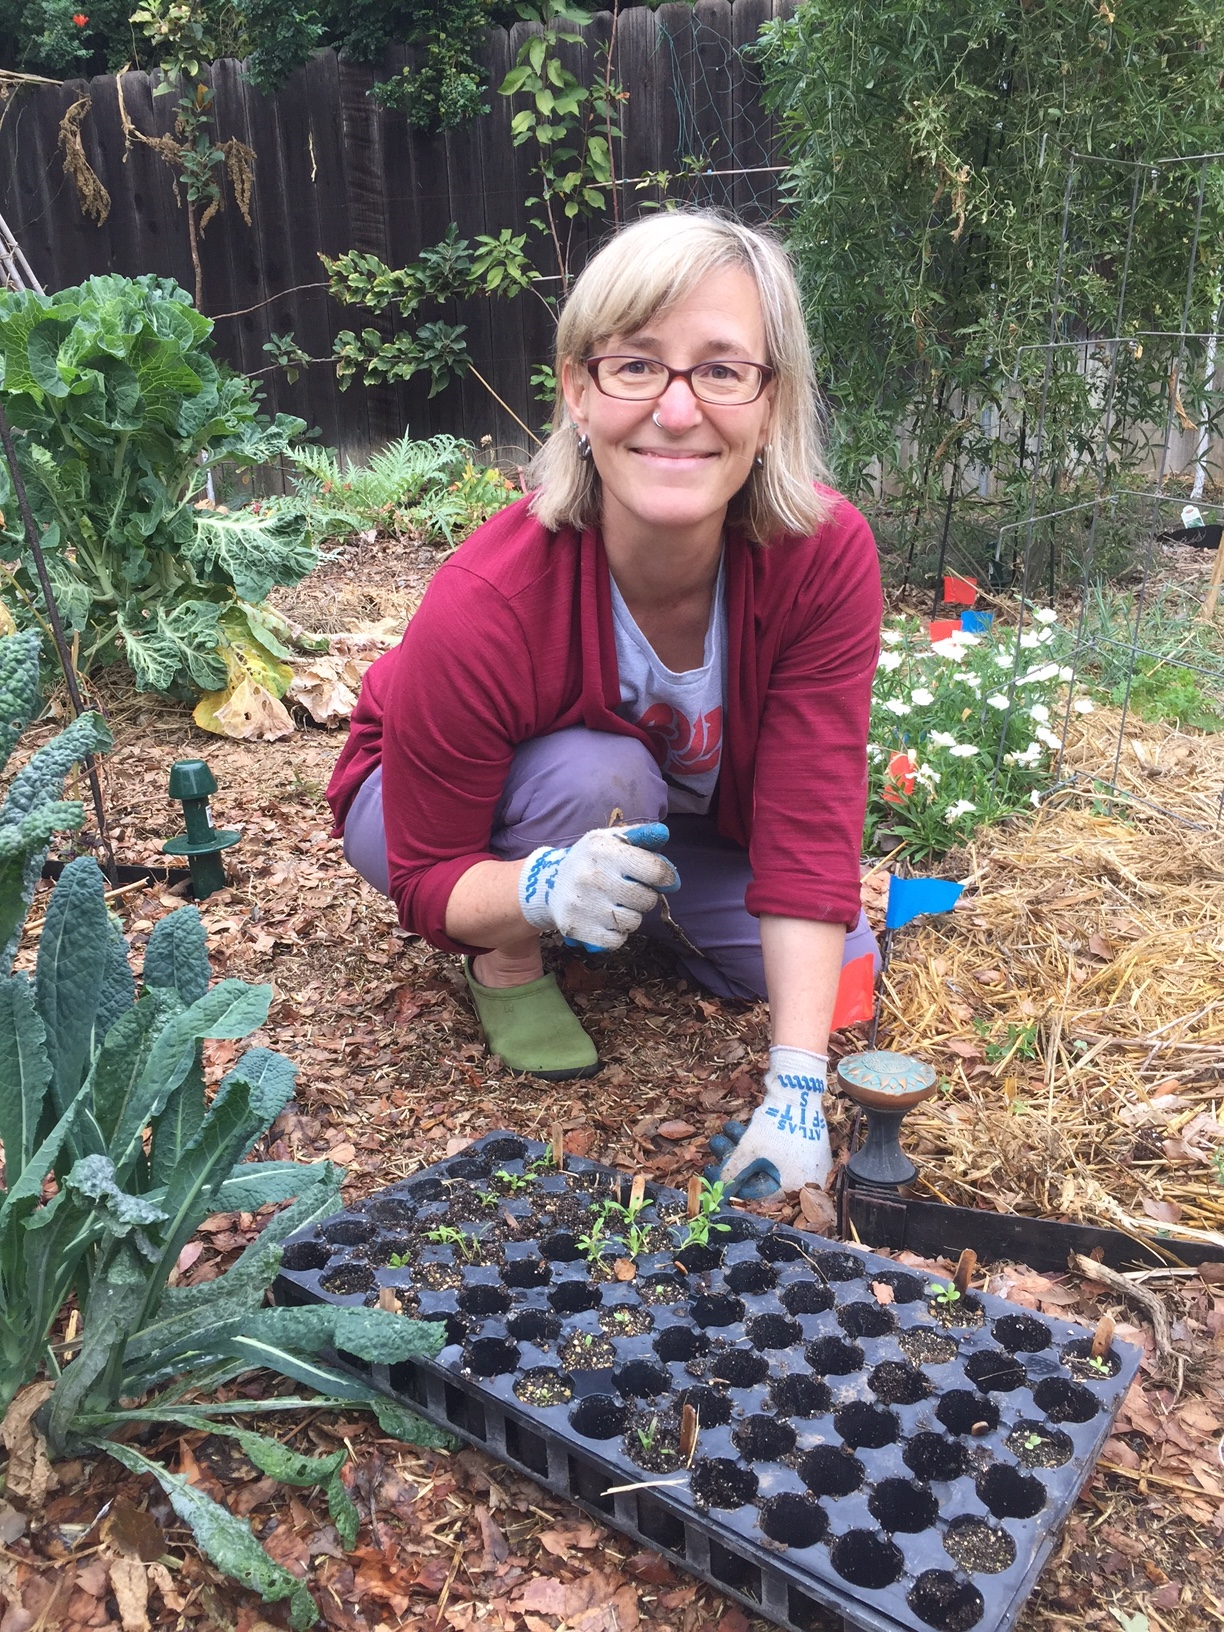 Joan Stevens loves plants - She is a botanist and ethnobotanist by training and a gardener by choice. She guerilla composts and works to improve the soil wherever she can. Joan teaches gardening, permaculture, and science classes in a variety of settings and is currently a biology instructor at Pasadena City College. She has two boys who are the inspiration for Two Suns Farm, an experimental micro-farm in Pasadena.Her most recent passions are designing year-round cutting gardens and growing food in our challenging climate.